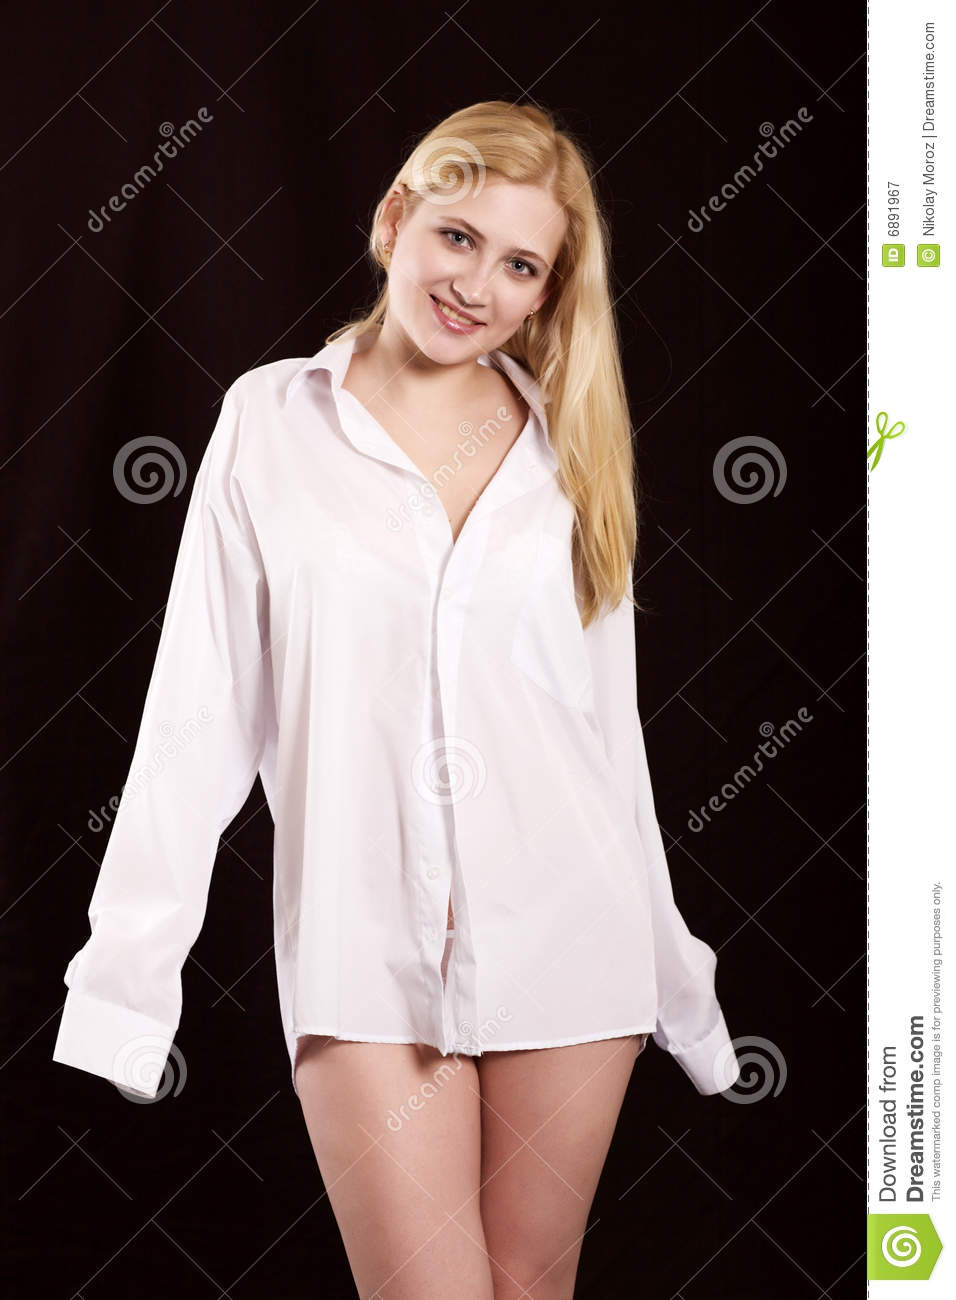 The girl in a white shirt stock image. Image of positivity - 6891967